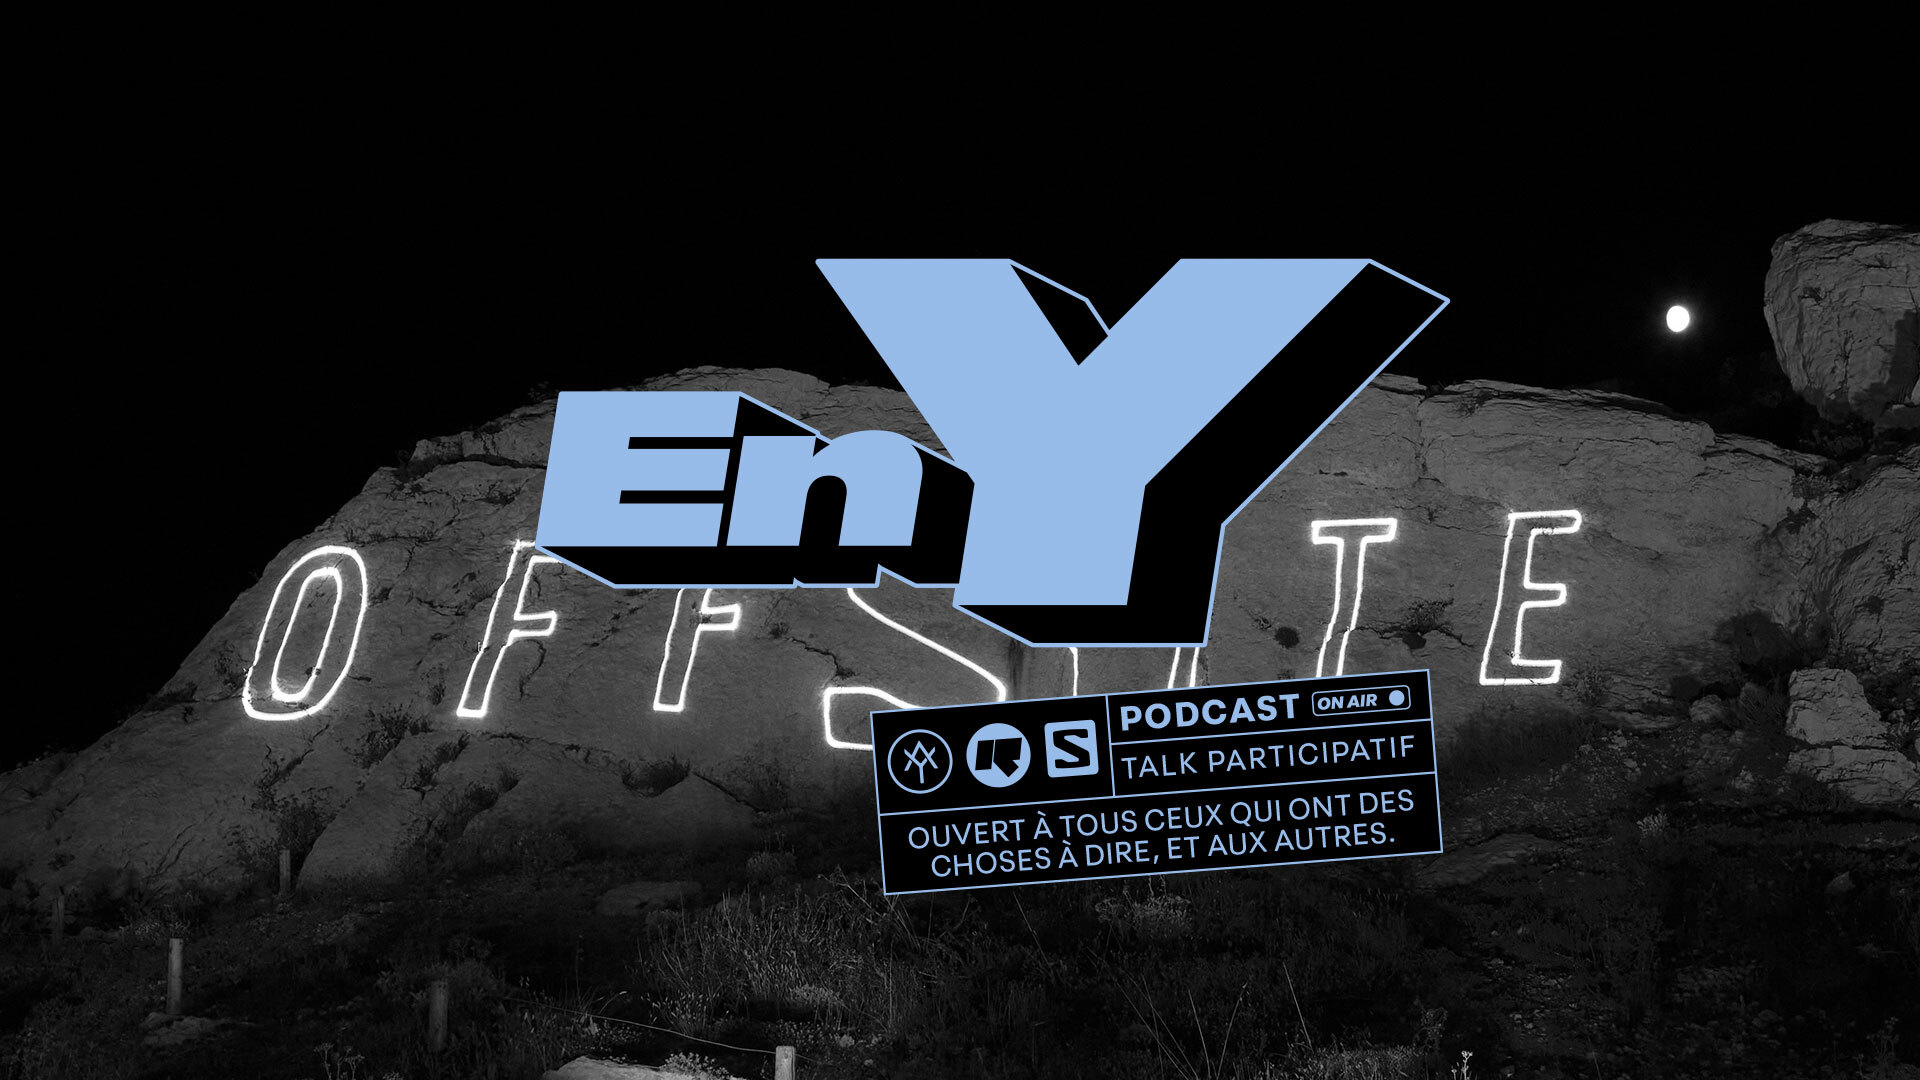 EnY-Podcast-template-16x9_salomon-offsite